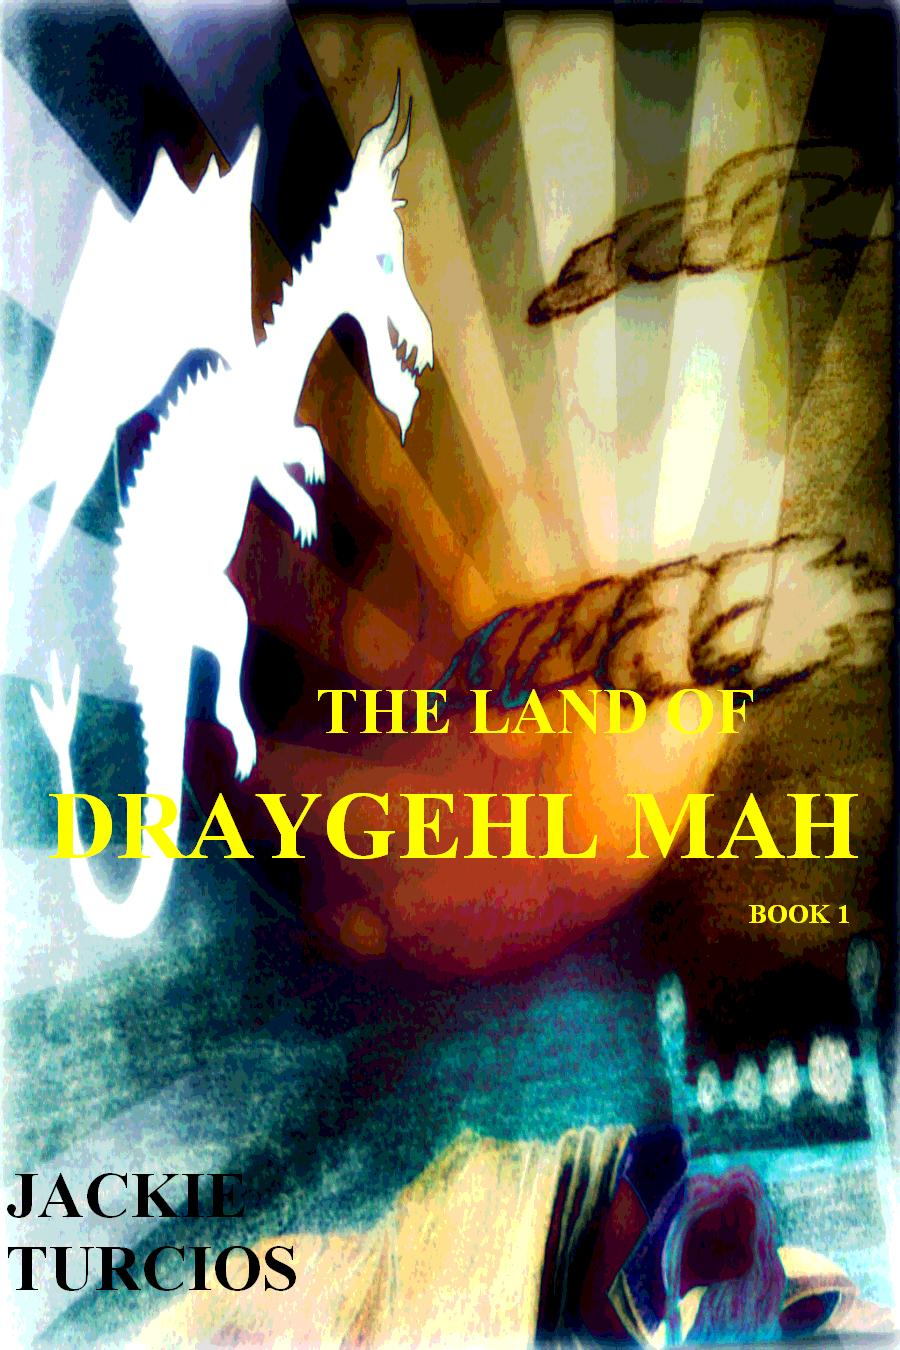 The Land of Draygehl Mah